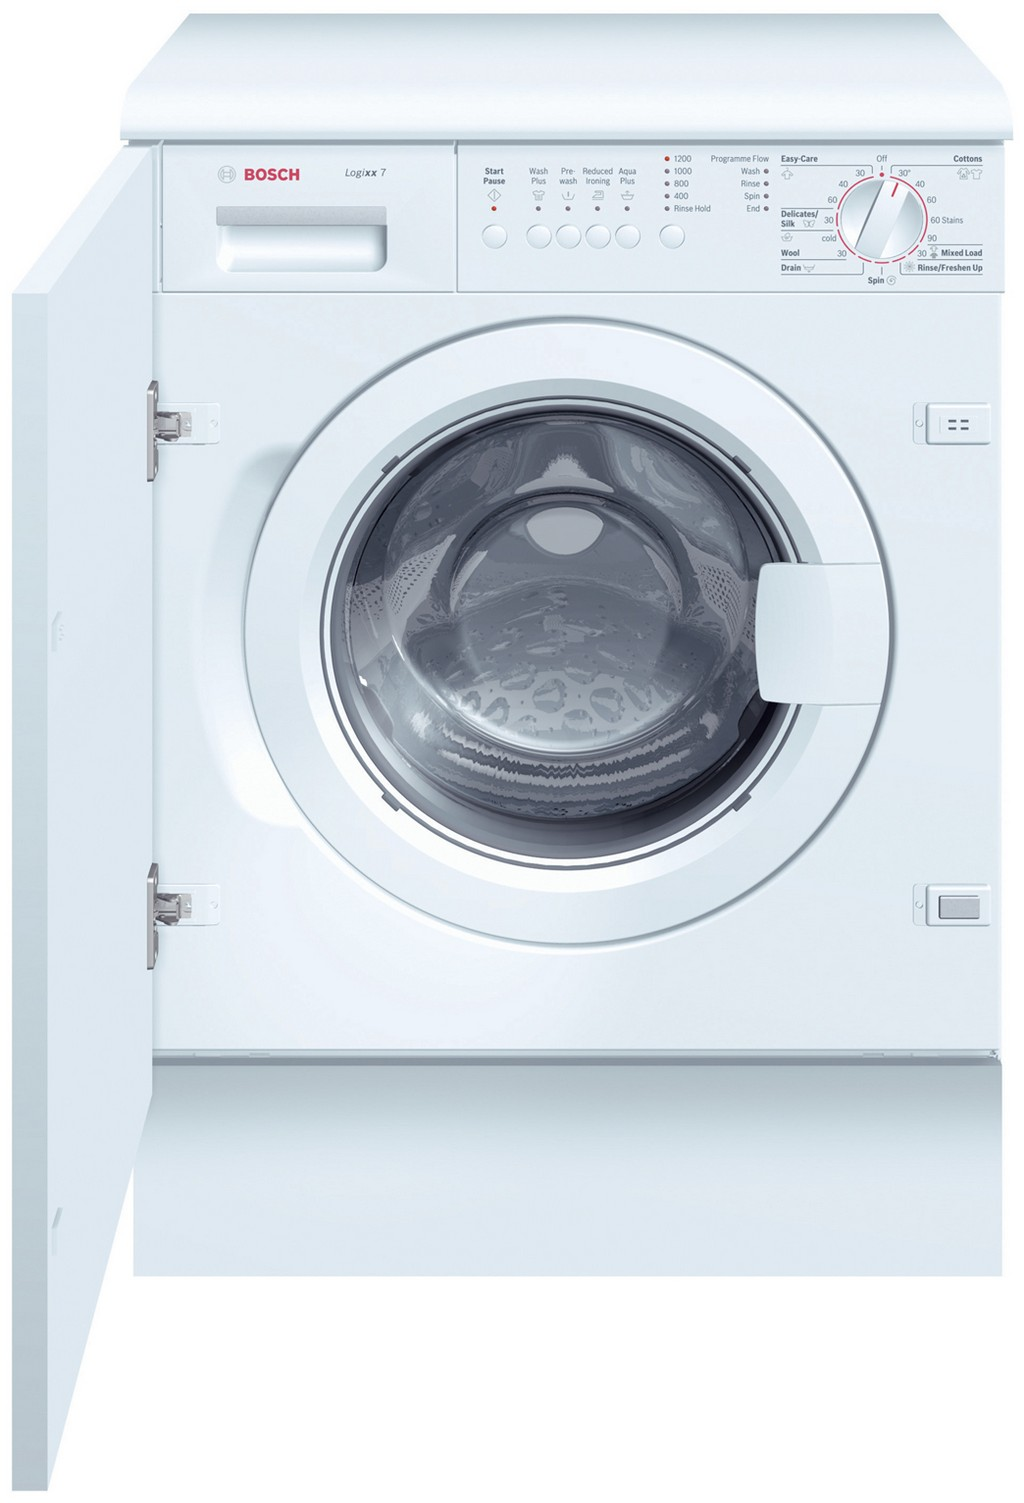 godrej washing machine, washer machine, siemens washing machine